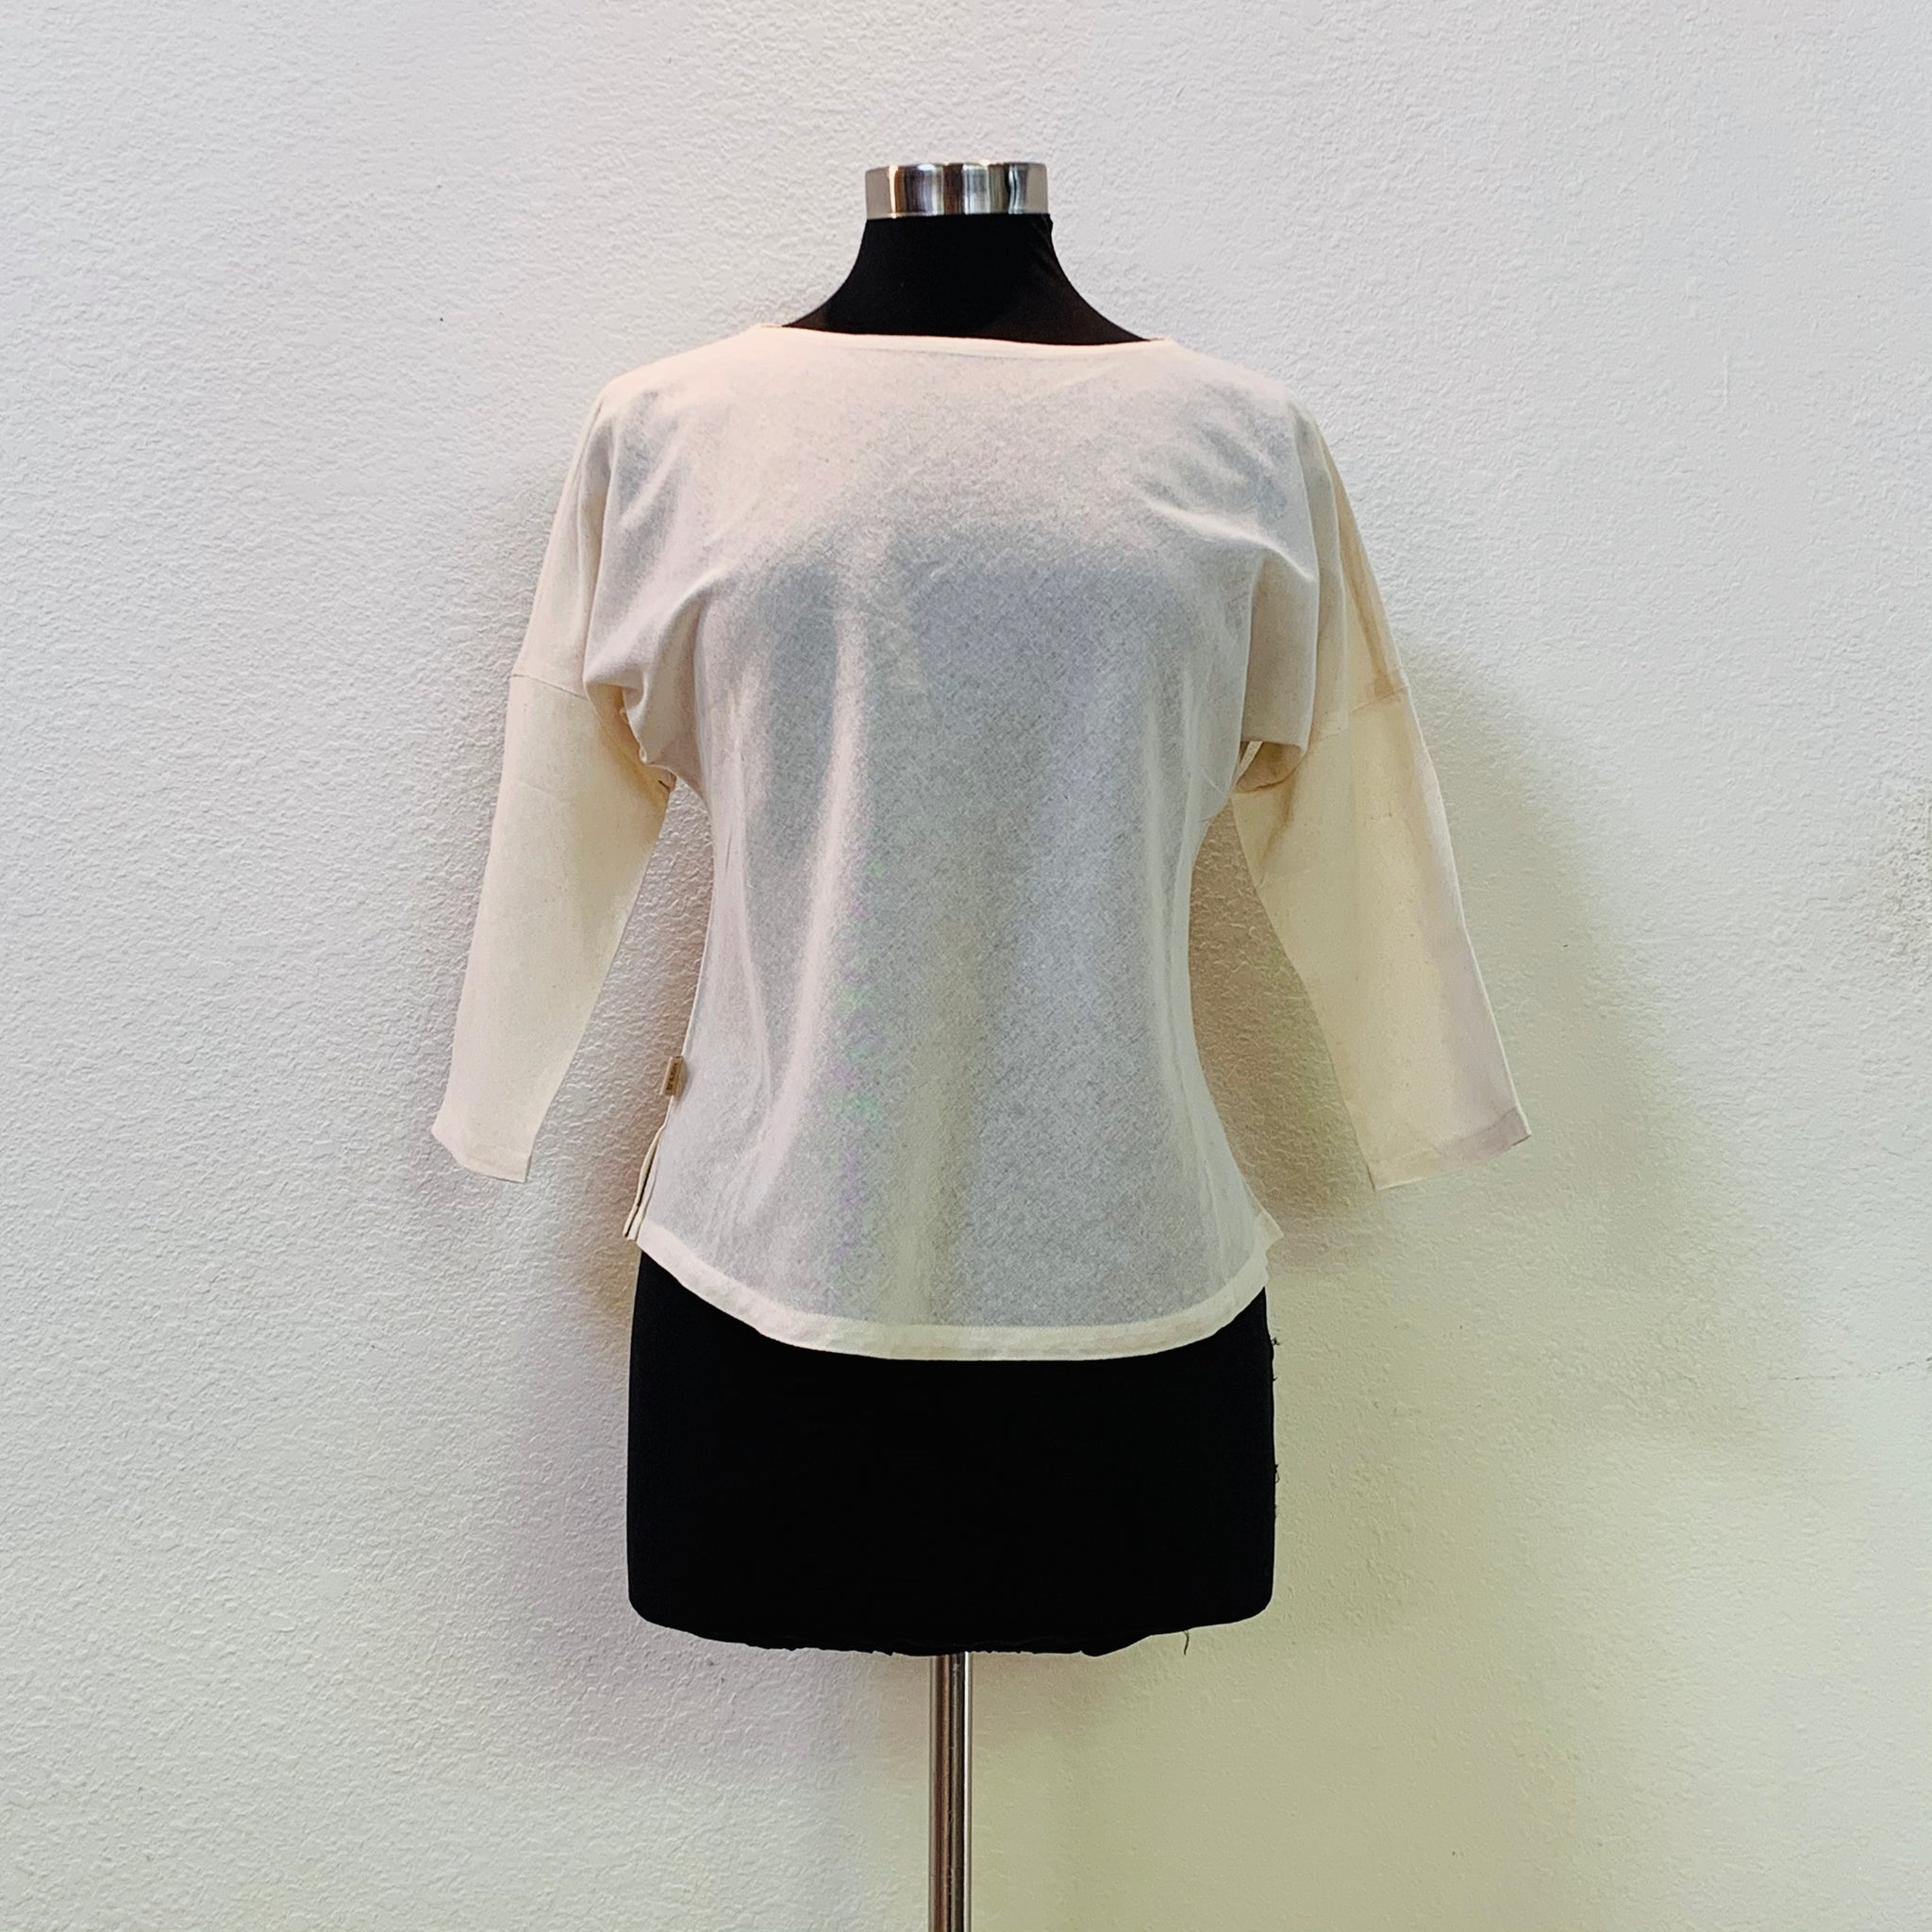 Half Sleeve Round-Neck Inner Shirt 9106Q - Size 2-8 - Natural White